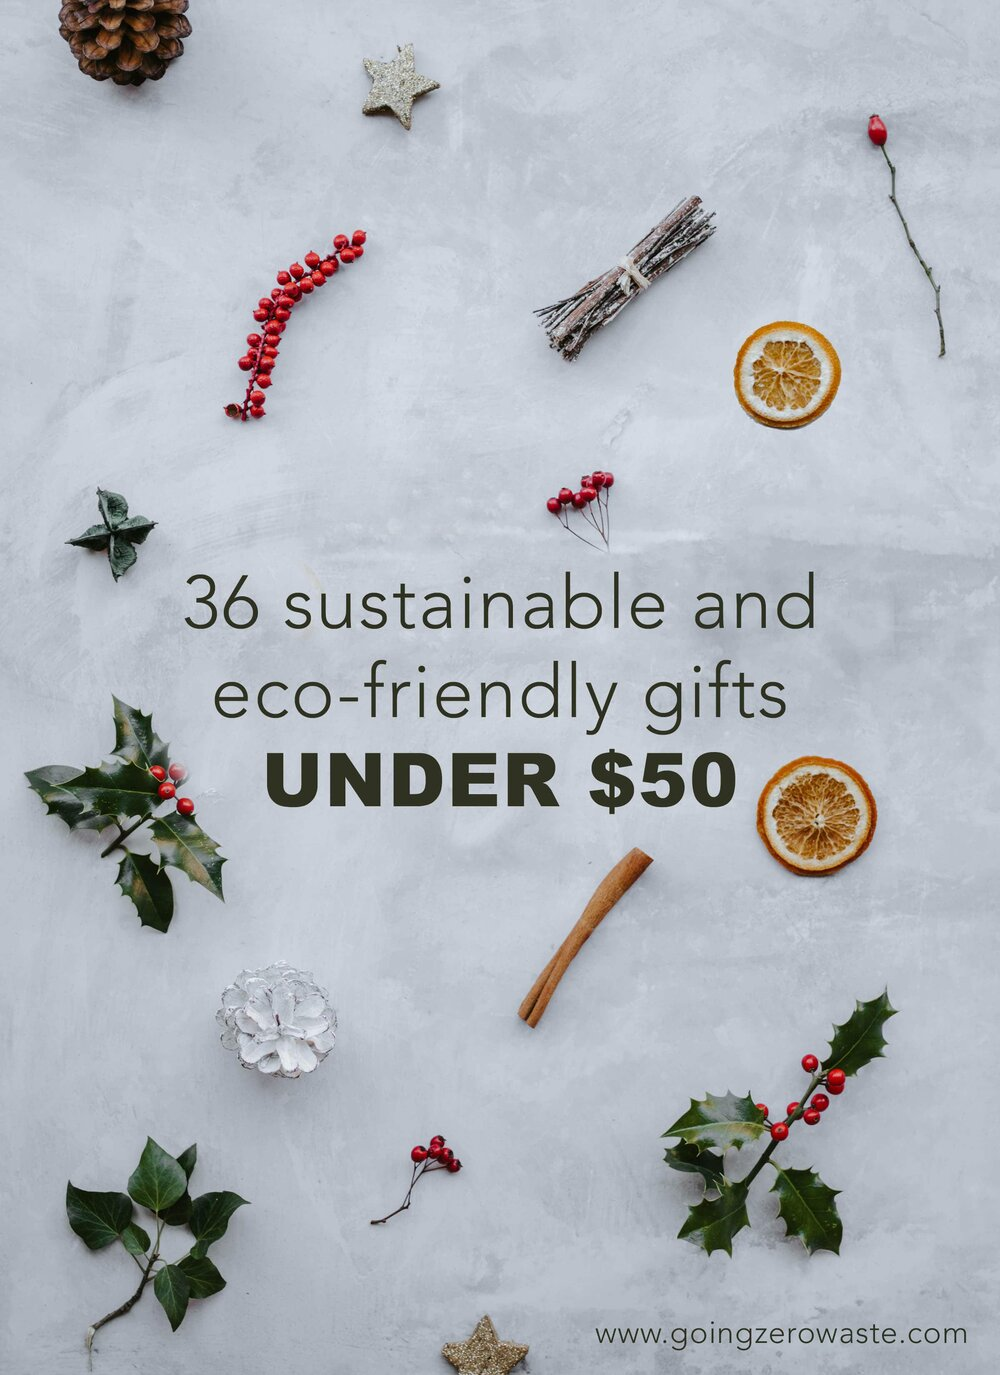 36 sustainable and eco-friendly gifts under $50 from www.goingzerowaste.com #stockingstuffer #stockingfiller #ecofriendly #sustainable #sustainablegifts #zerowaste #eco #ecogfits #giftguide #sustainablestockings